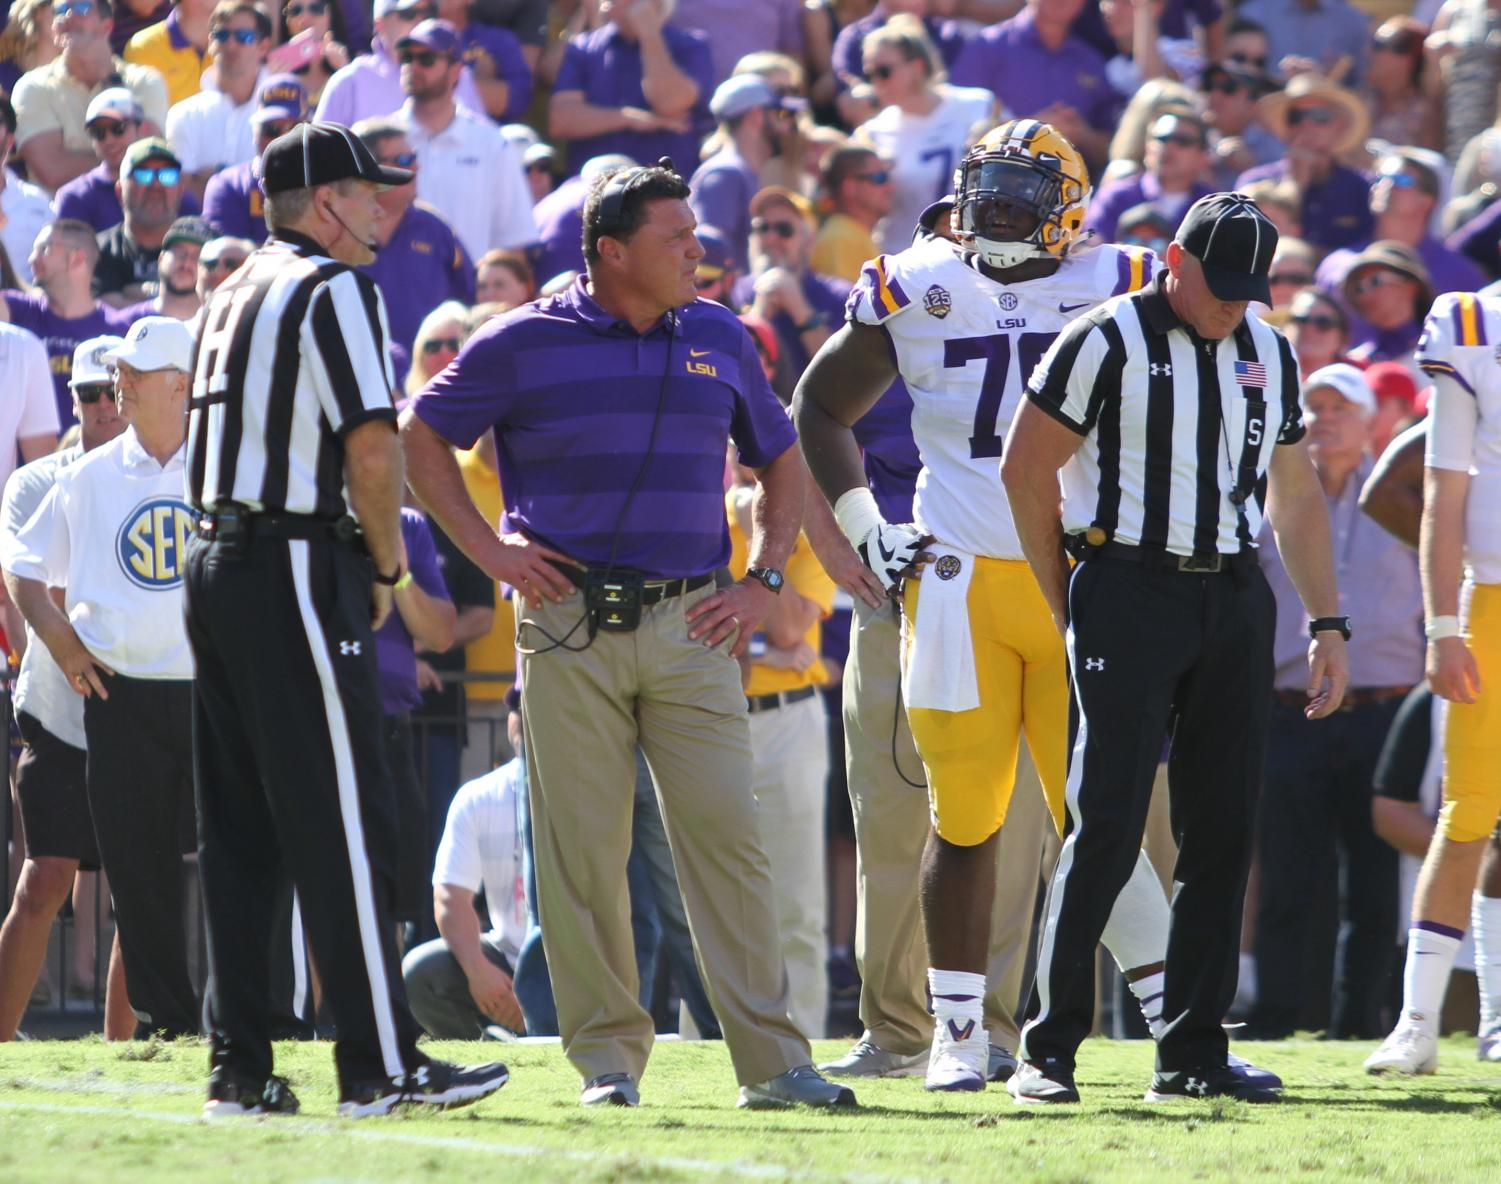 LSU is number one in the nation for the first time since 2011.